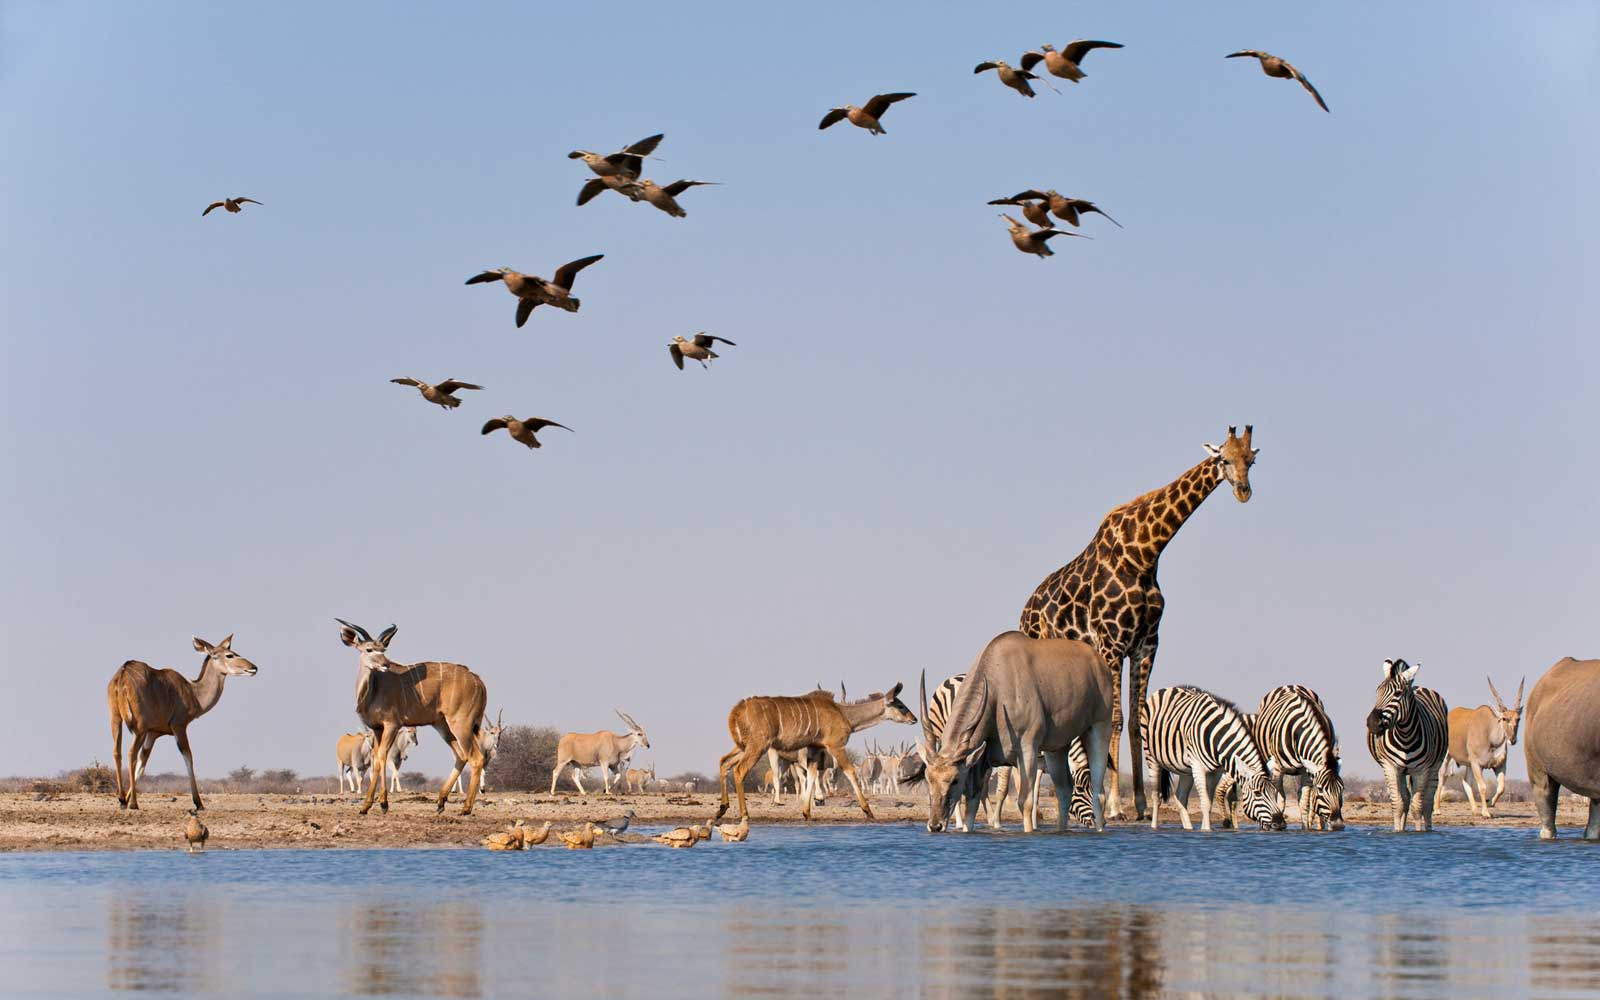 Different groups of animals at waterhole, Etosha National Park, Namibia